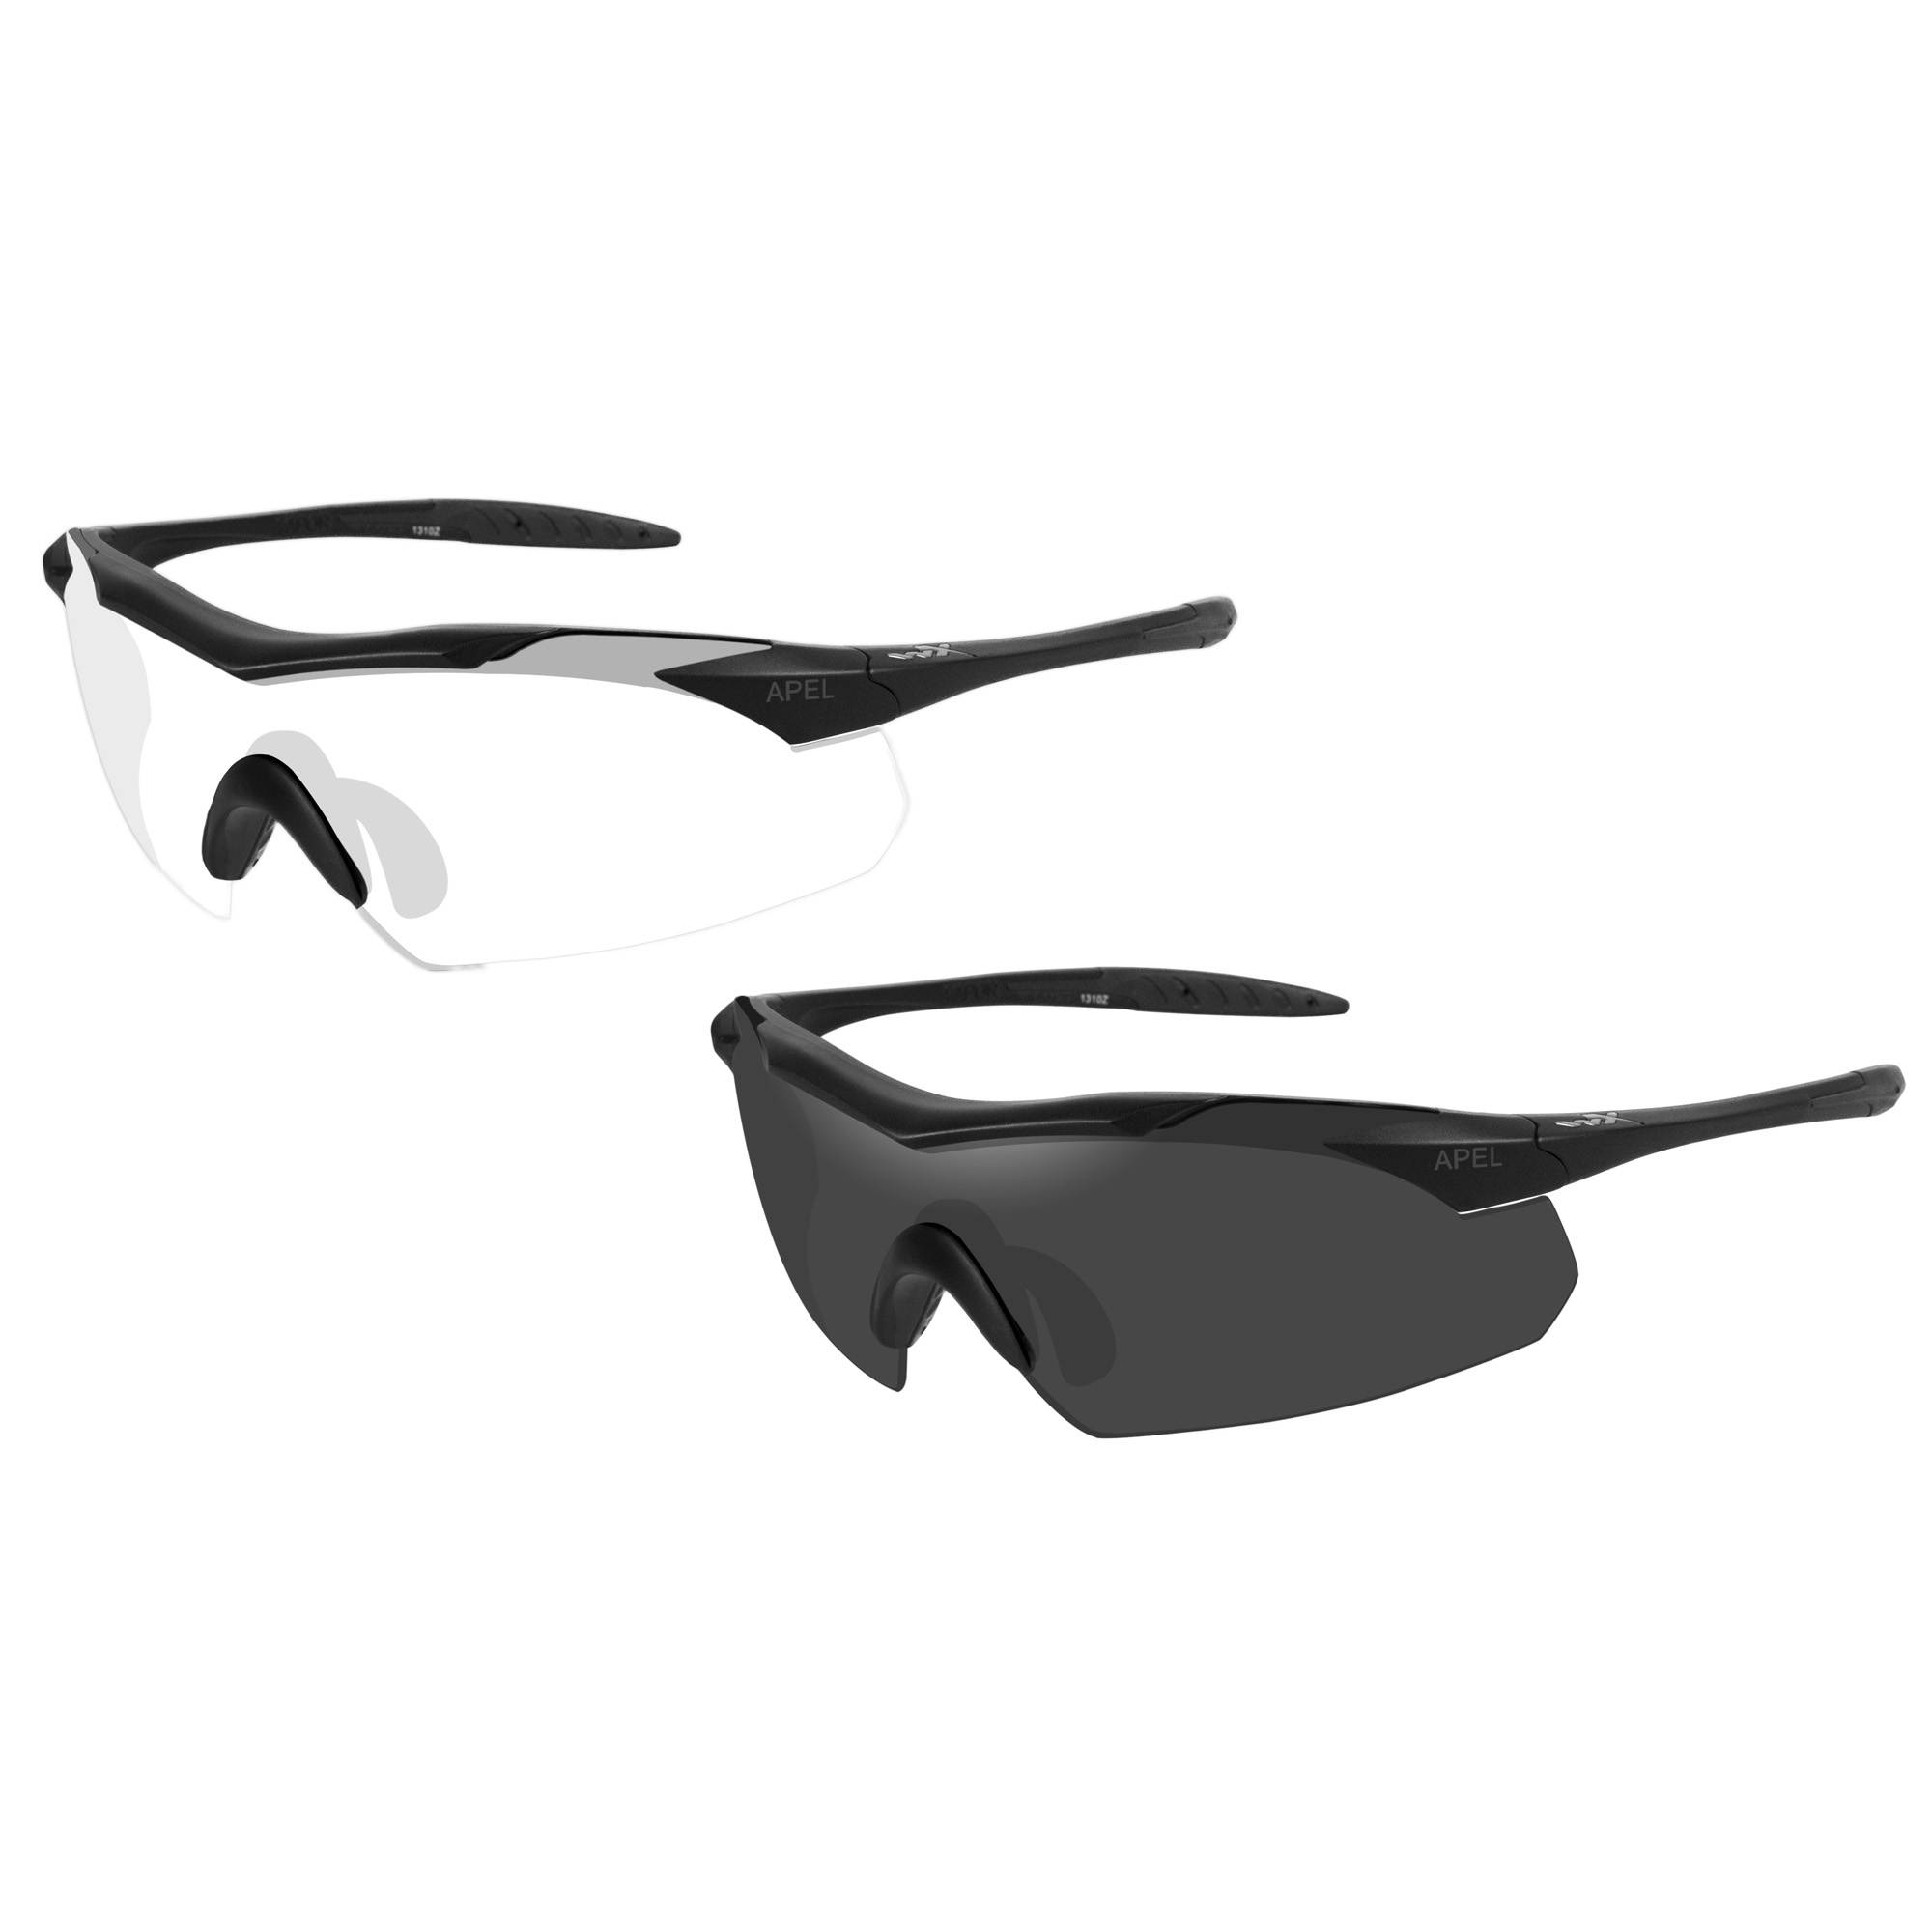 Wiley X Vapor 2 Lens Pack Matte